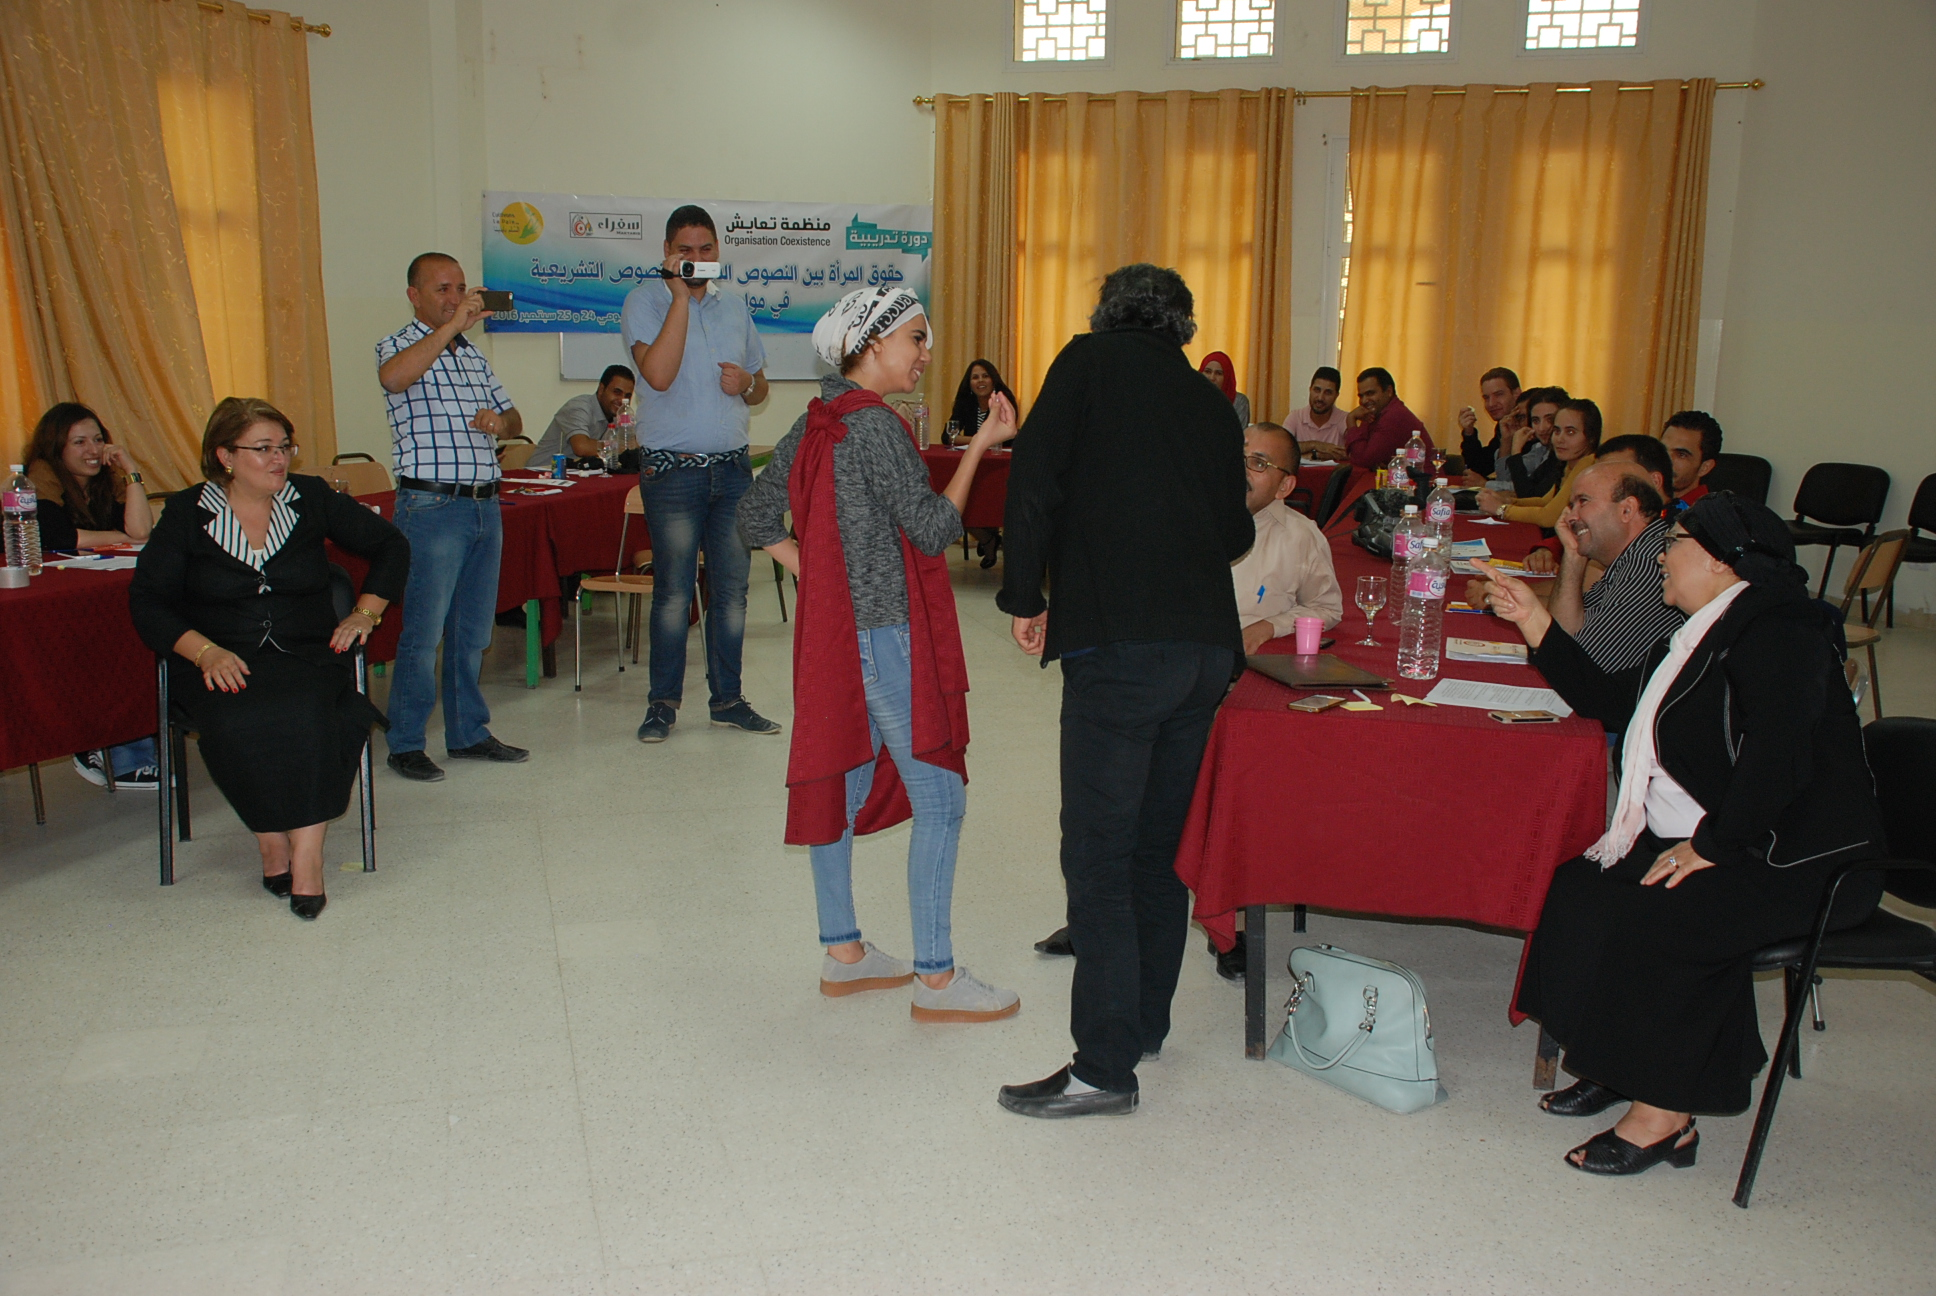 Tunisia Workshop 3 Sept 2016.JPG